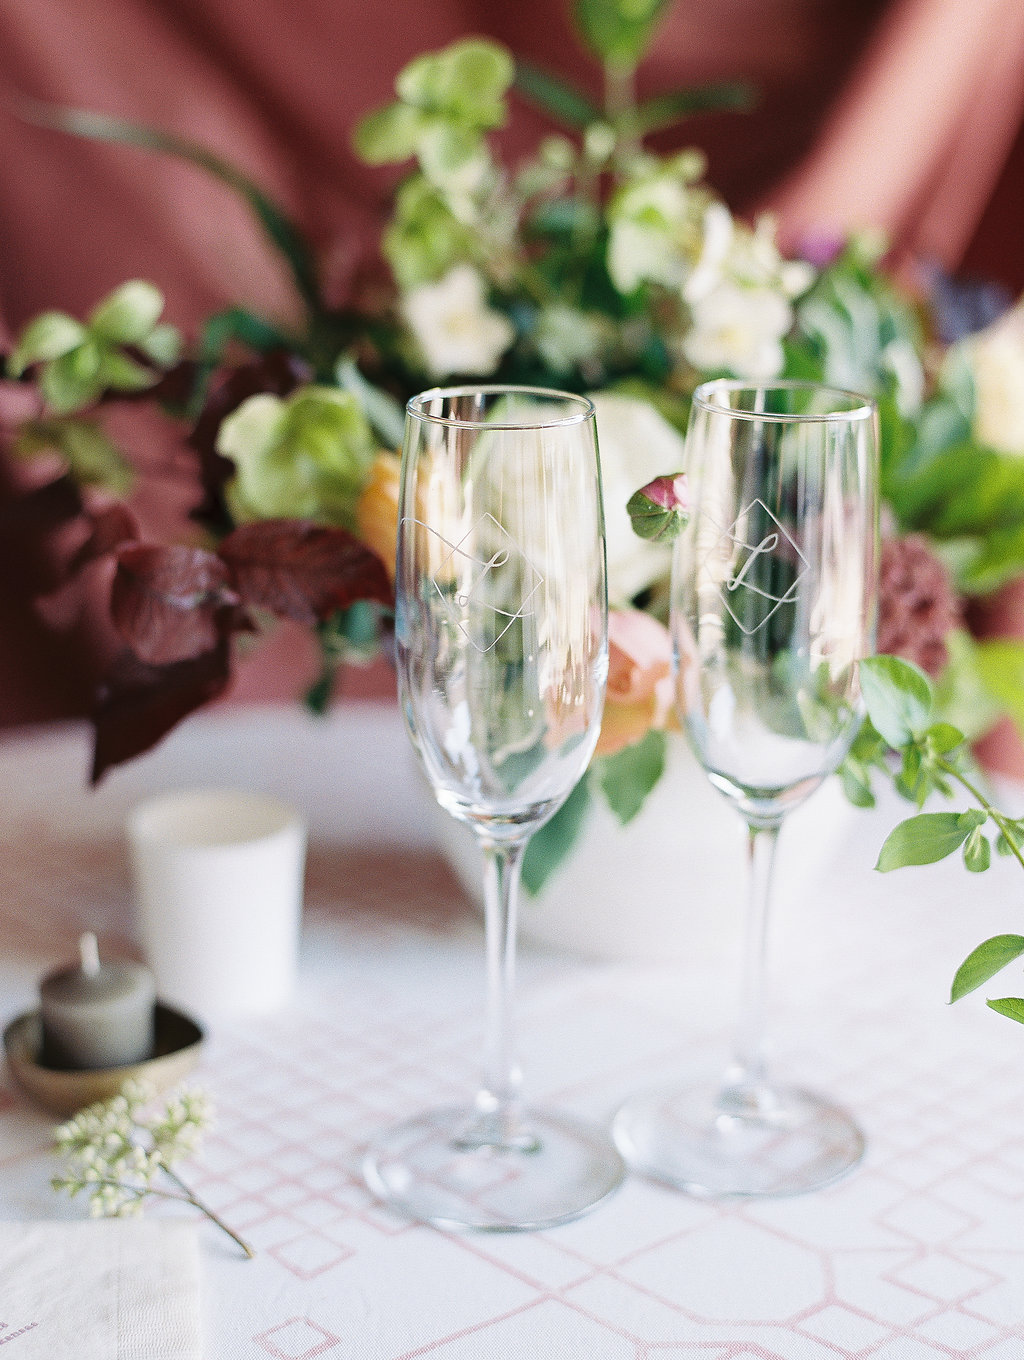 jessica-zimmerman-champagne-glasses-custom-wedding.jpg